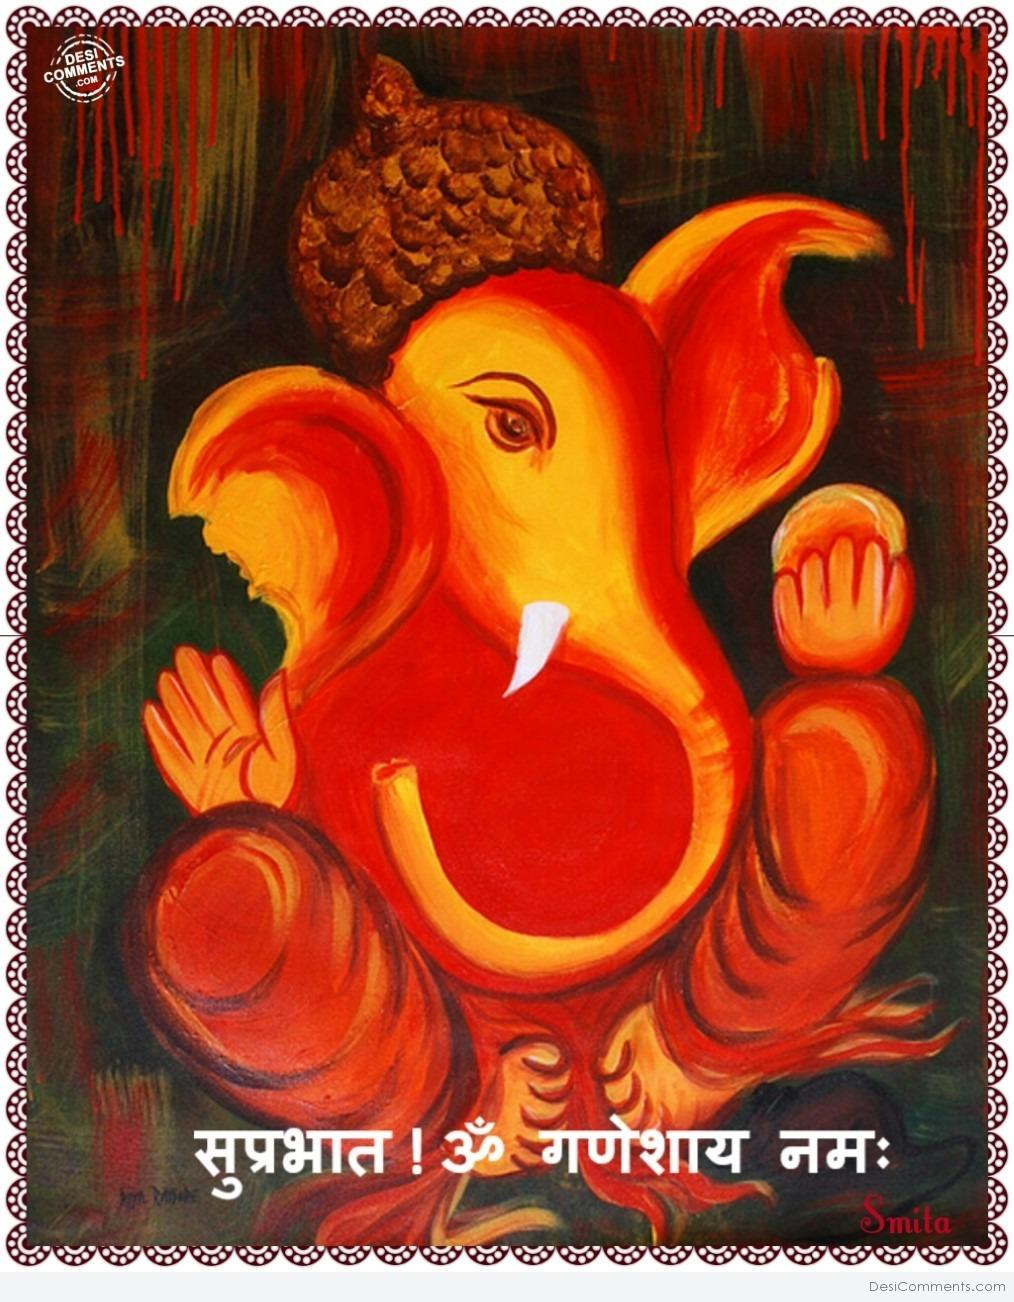 Marathi Wallpapers With Love Quotes Suprabhat Desicomments Com